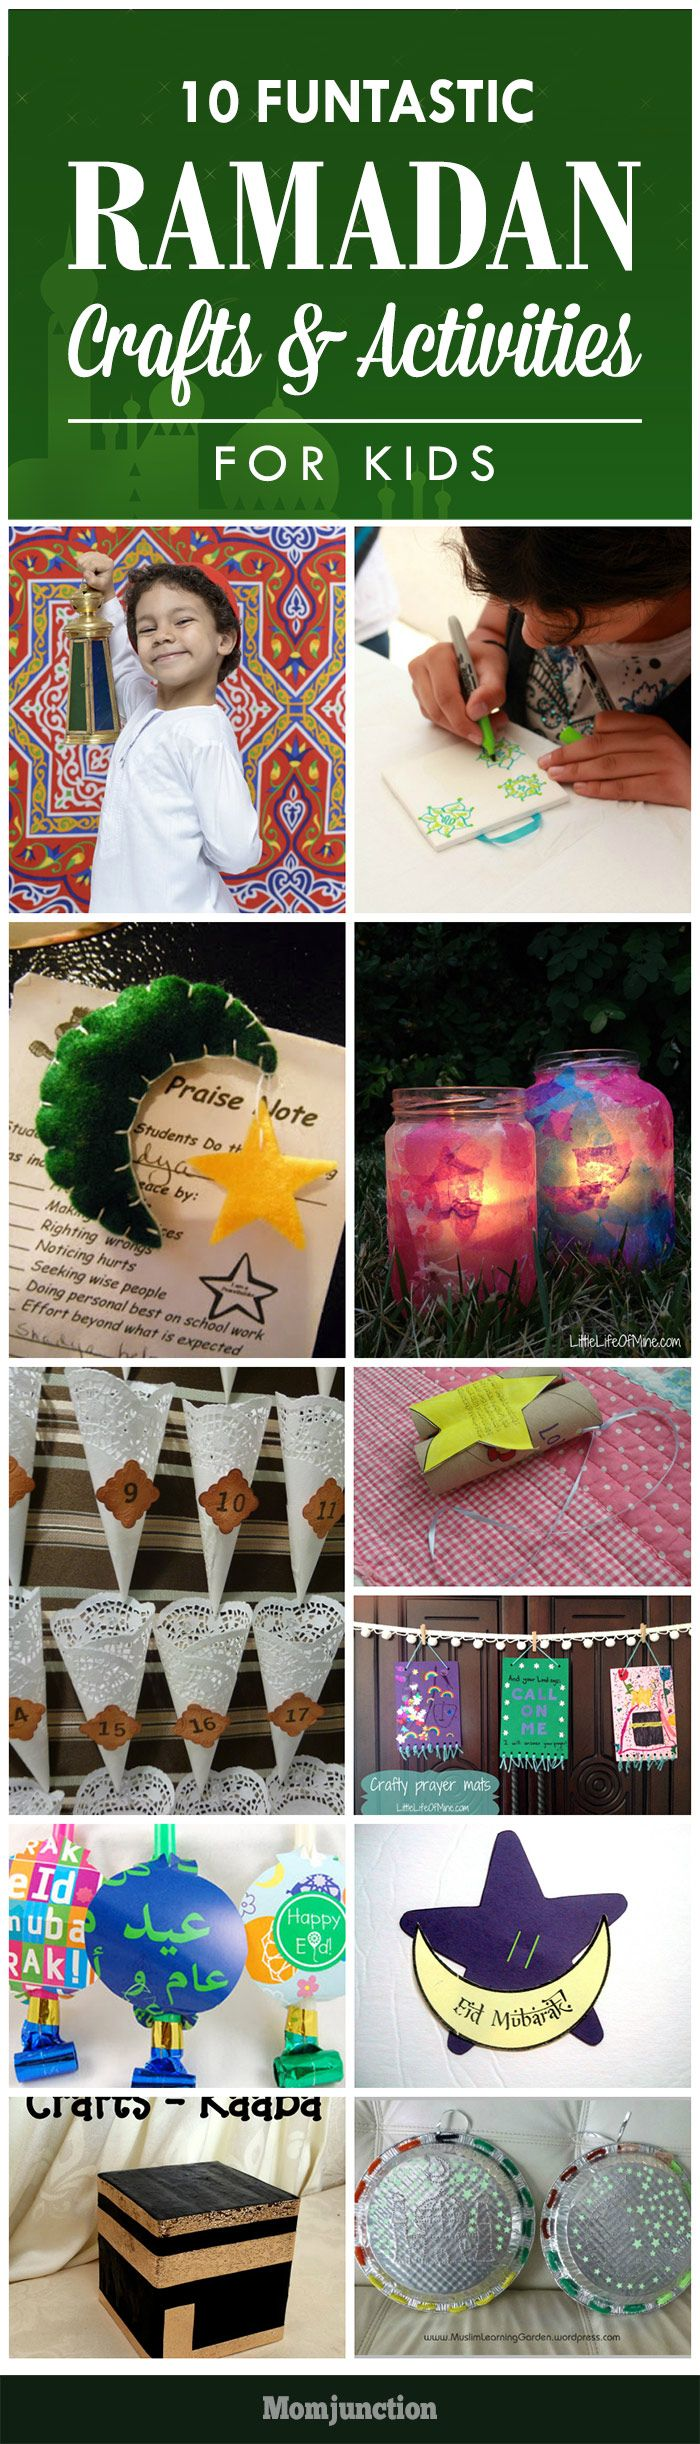 10 Funtastic Ramadan Crafts And Activities For Kids